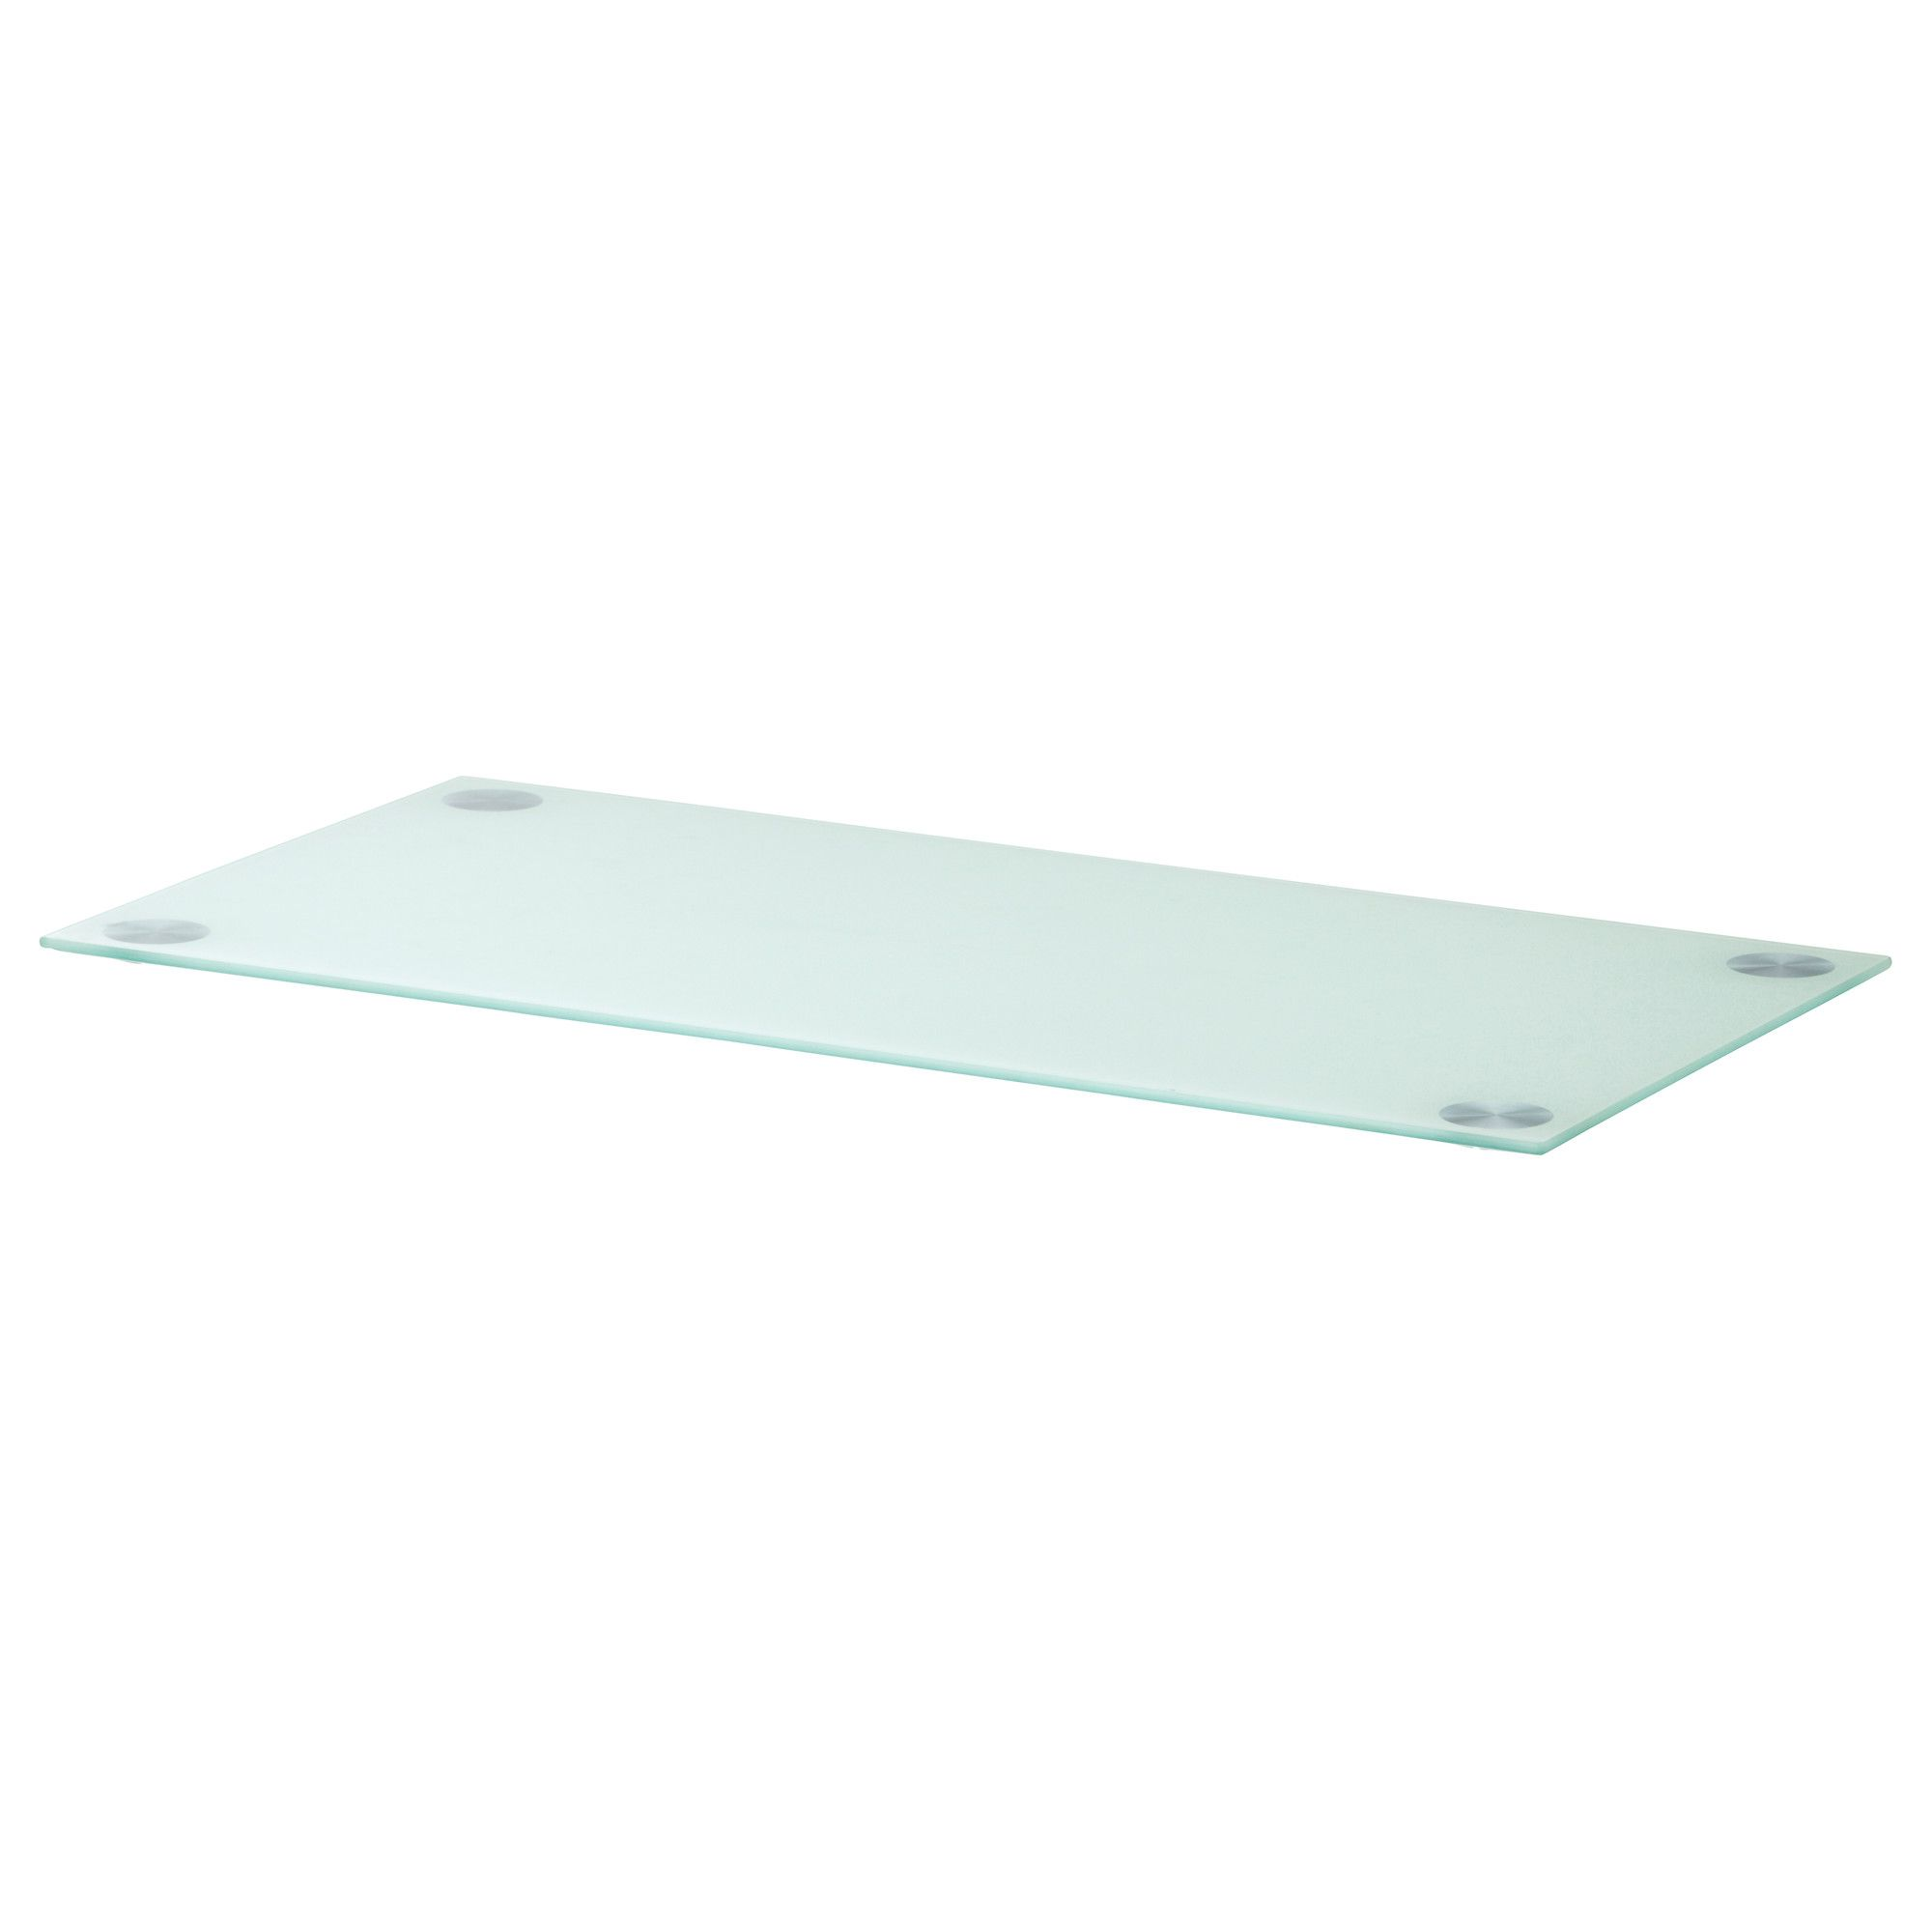 Glasholm table top glass white ikea my new office for 52 glass table top